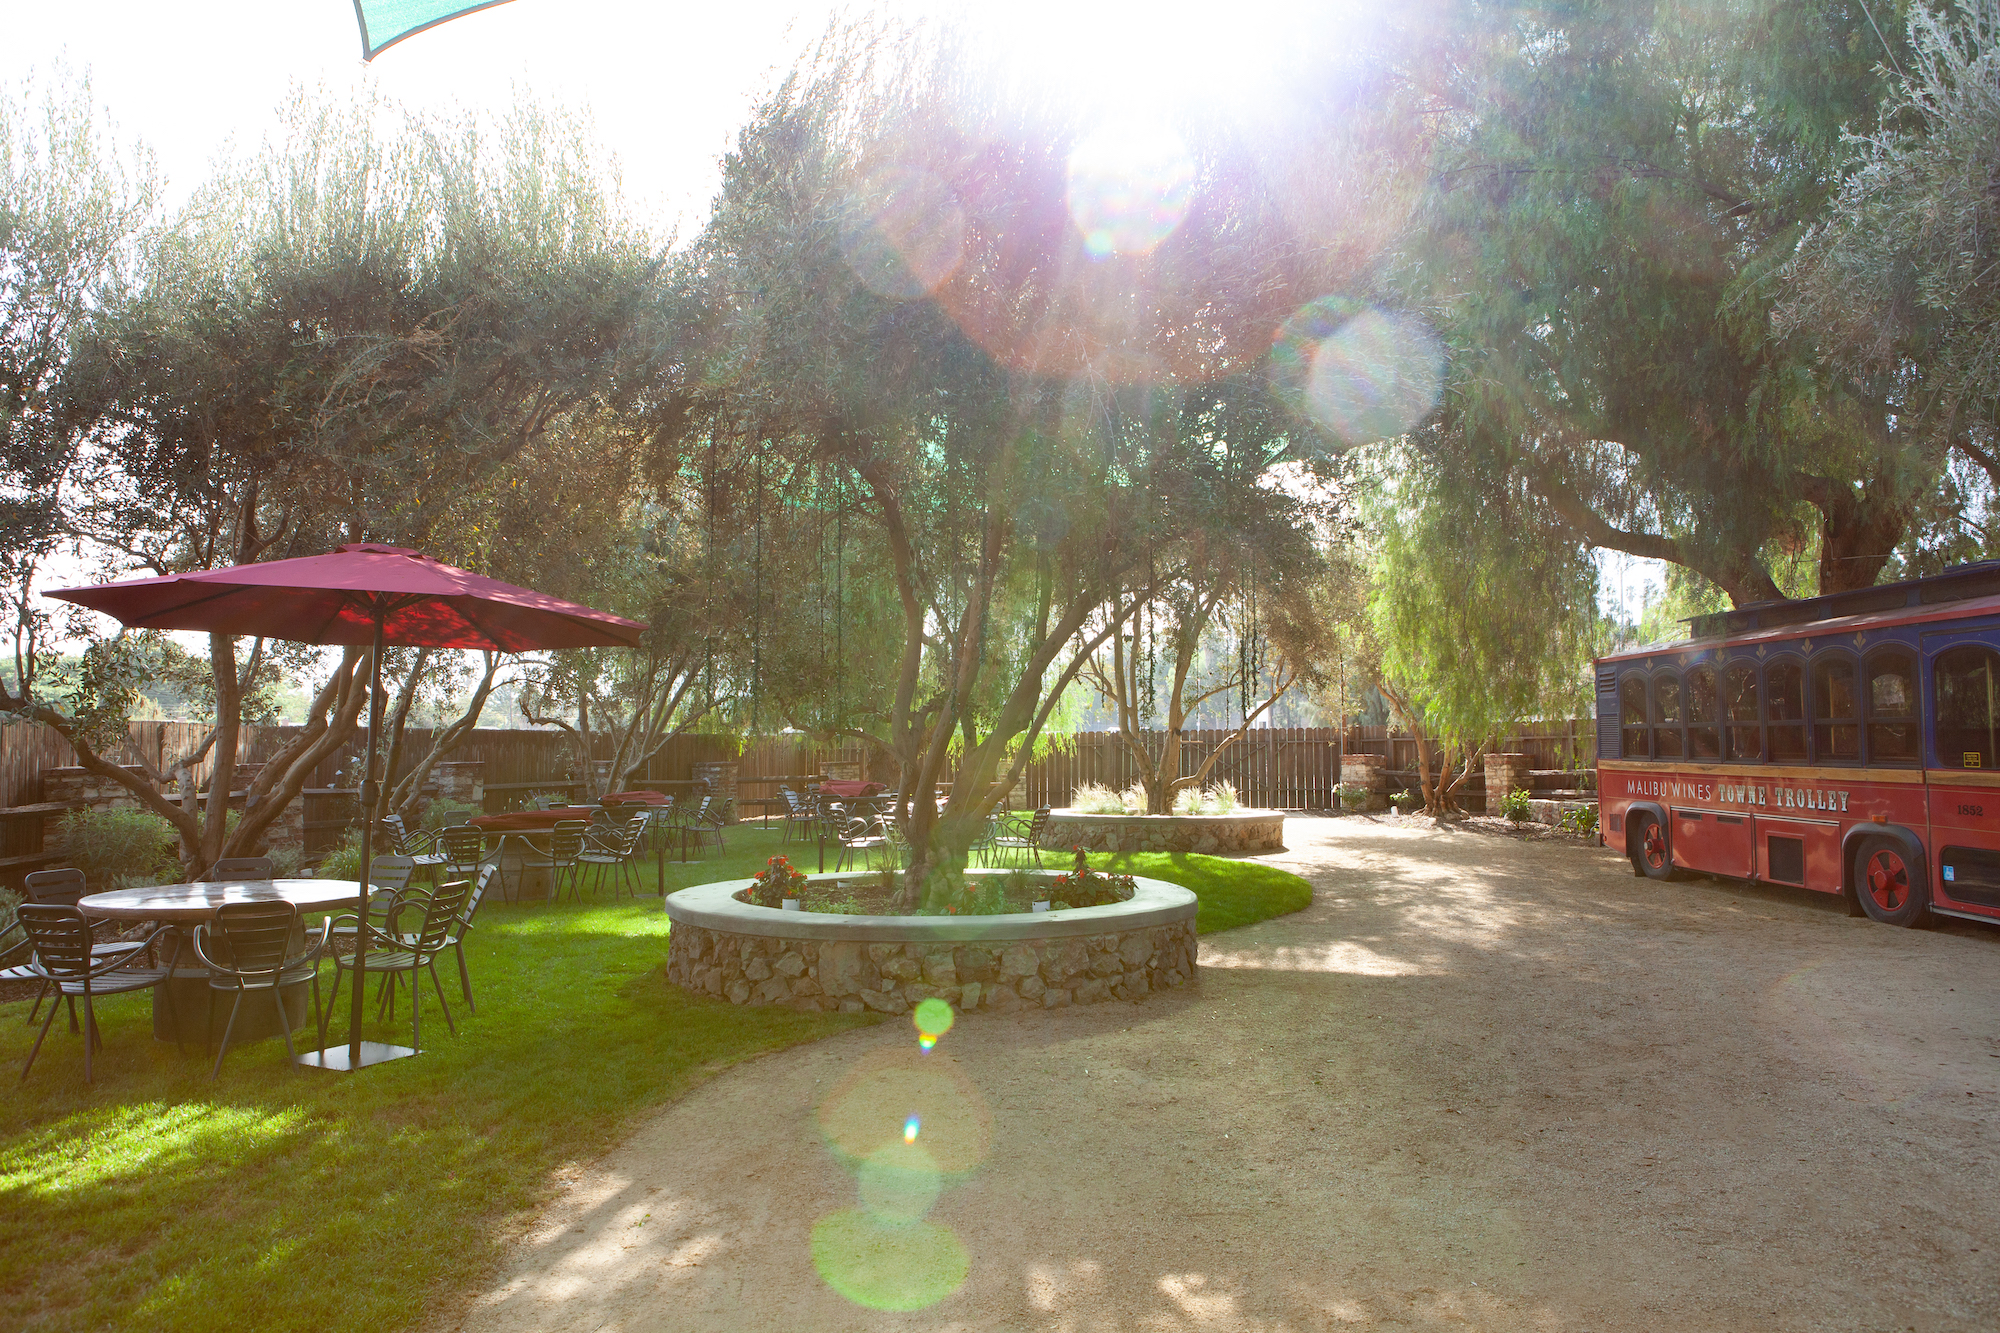 Malibu Wines and Beer Garden shown in the summer sun with a red collection of umbrellas and tables.